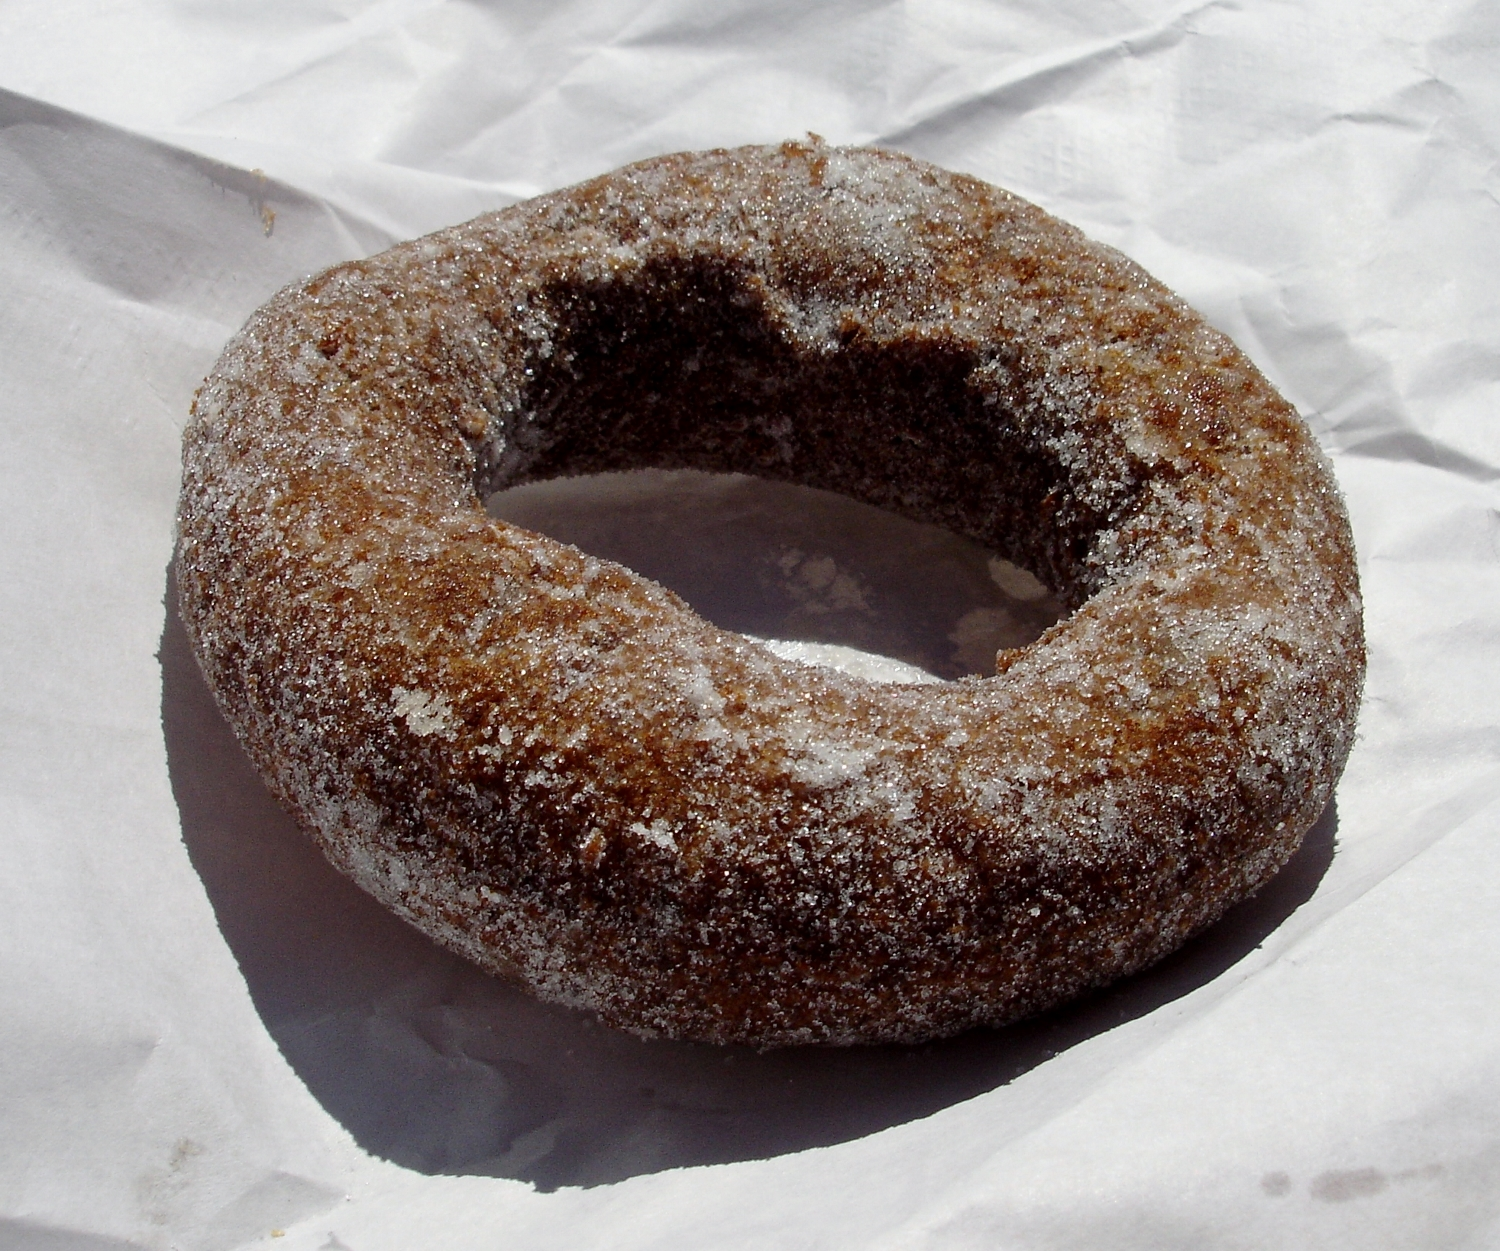 A sugared doughnut with a nice crunchy skin